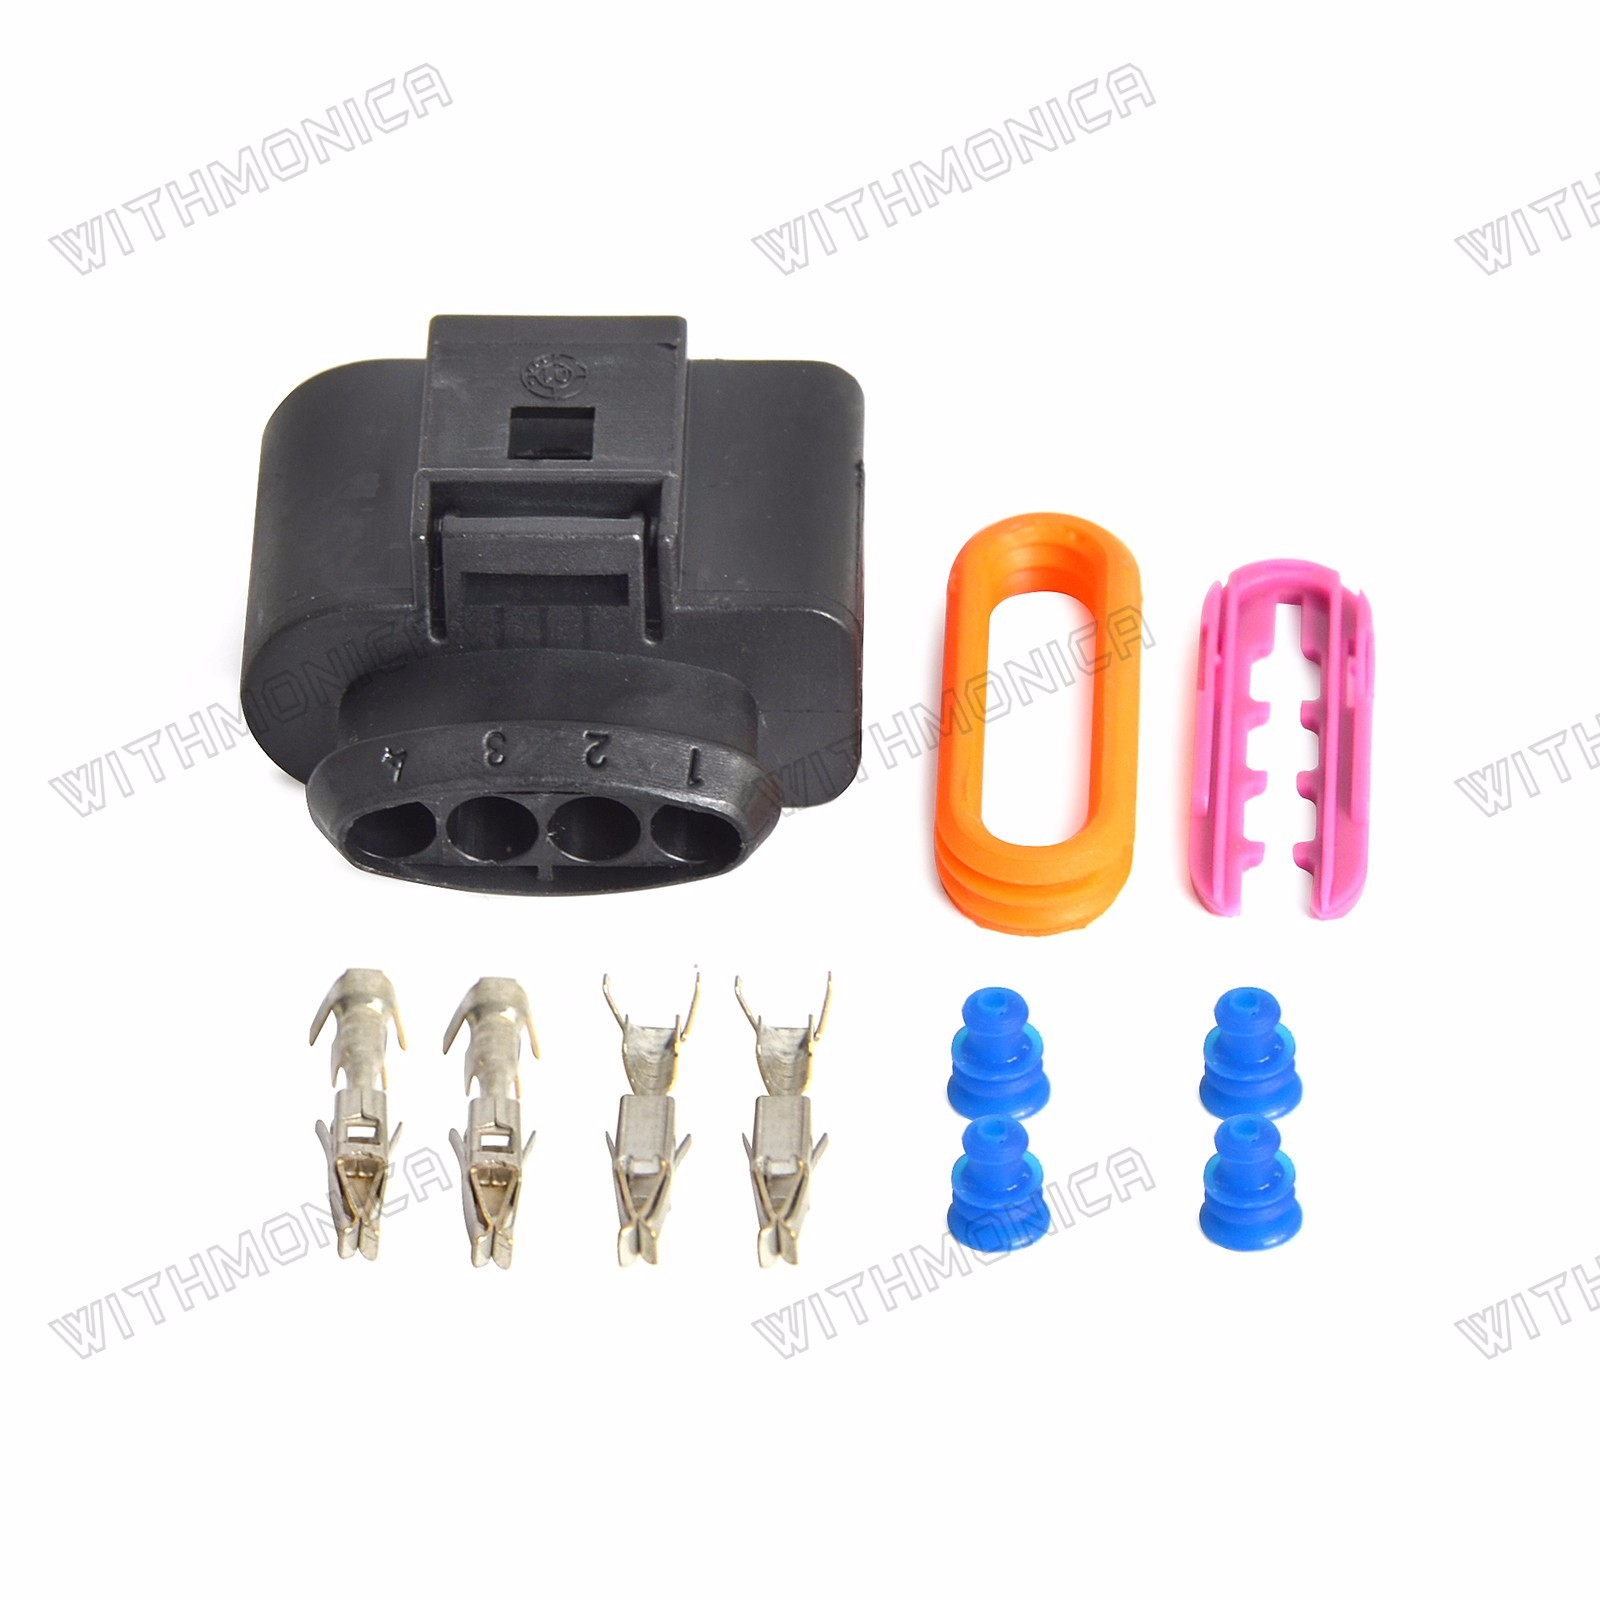 audi vw ignition coil wiring harness connector repair kit a4 a6 a8 Vw Automotive Wire Harness Connectors audi vw ignition coil wiring harness connector repair kit a4 a6 a8,passat jetta Auto Wiring Plug Connectors